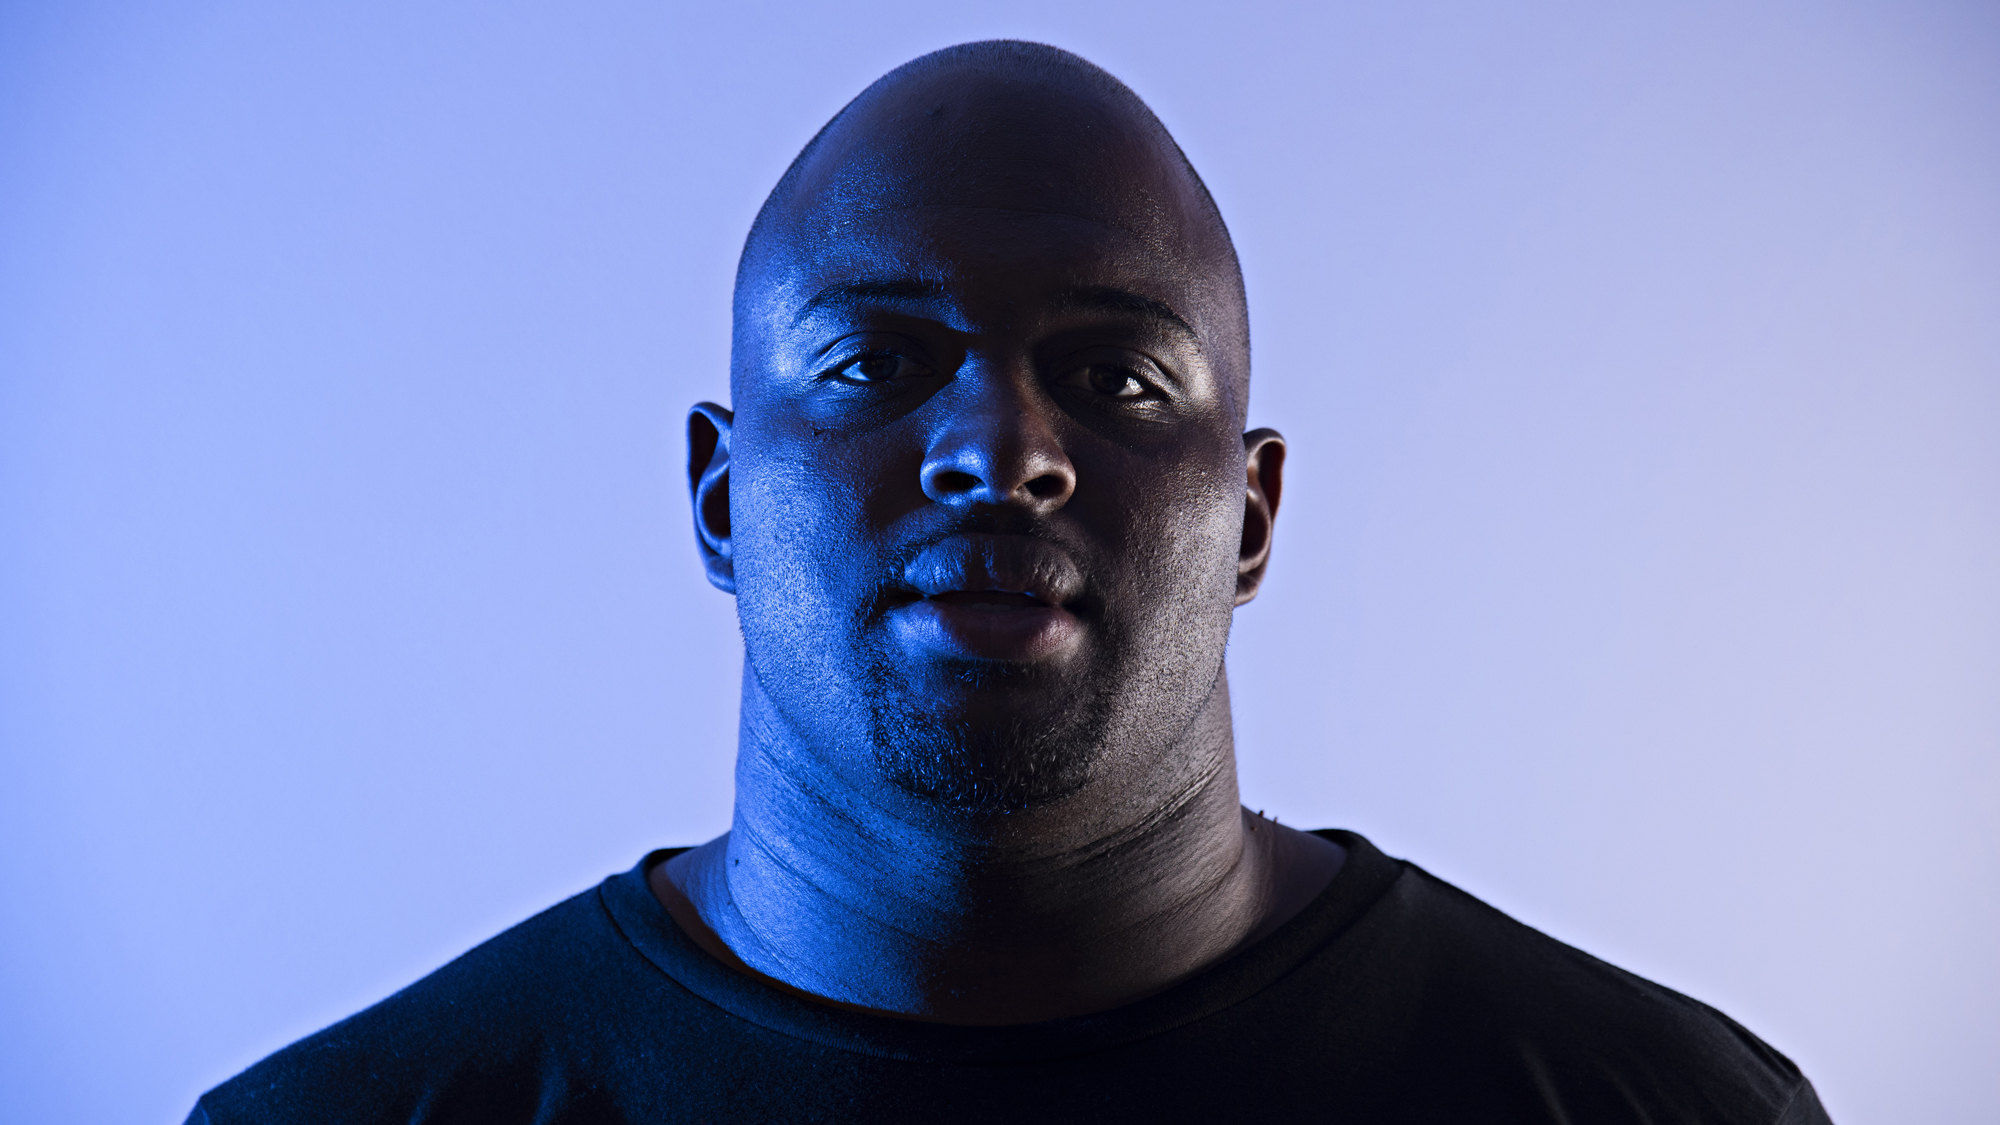 Chargers Brandon Mebane You Could Just Tell They Didn T